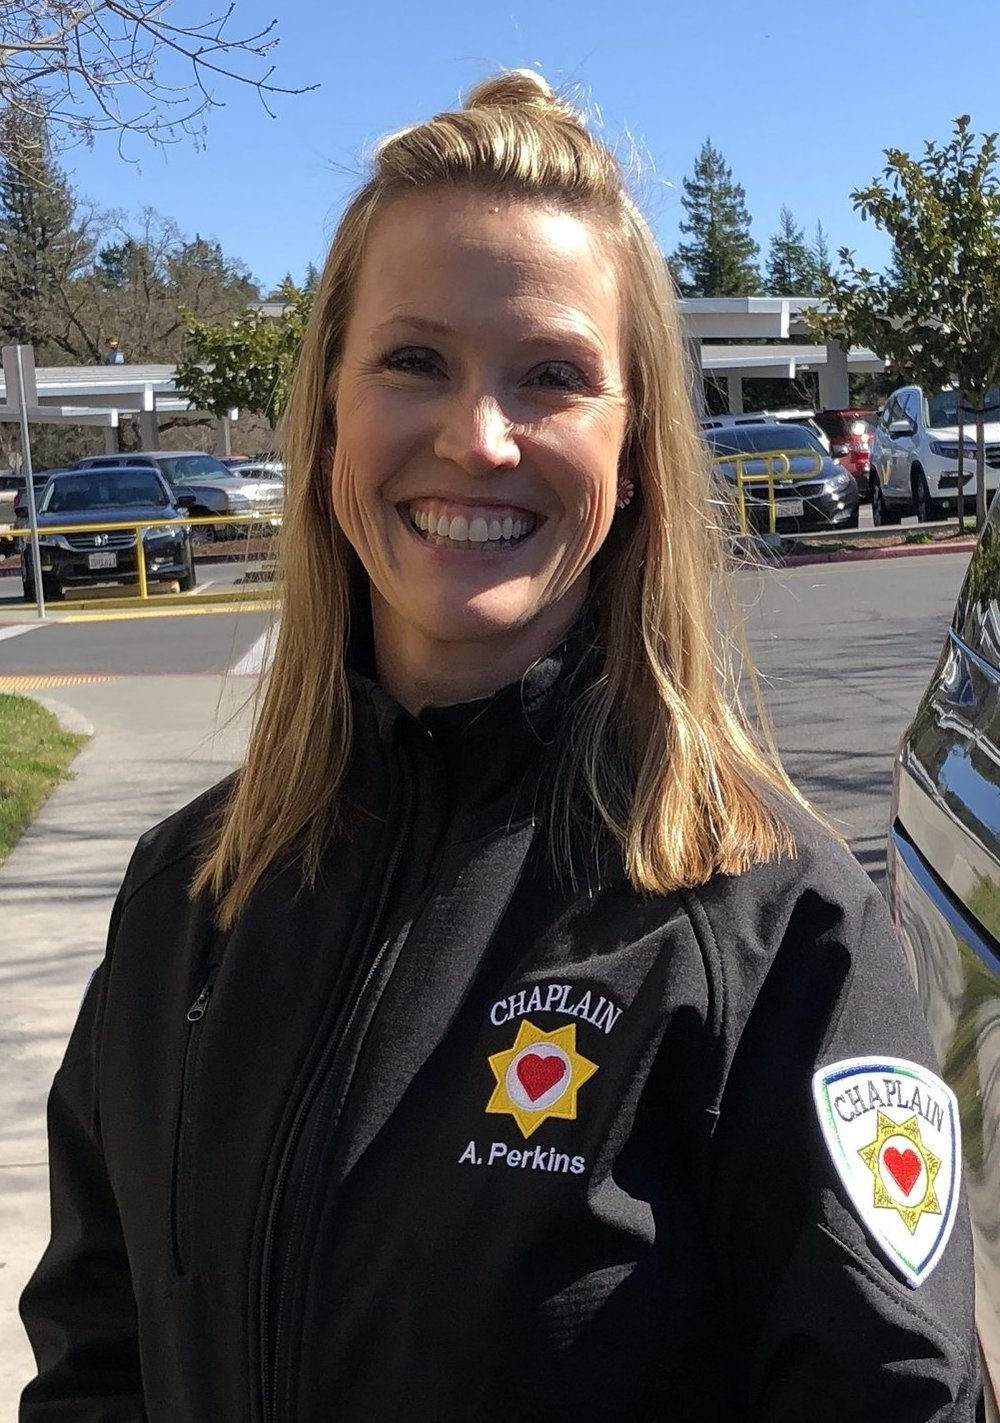 Chaplain Angela Perkins on call and ready to serve Sonoma County for the next 24hours.